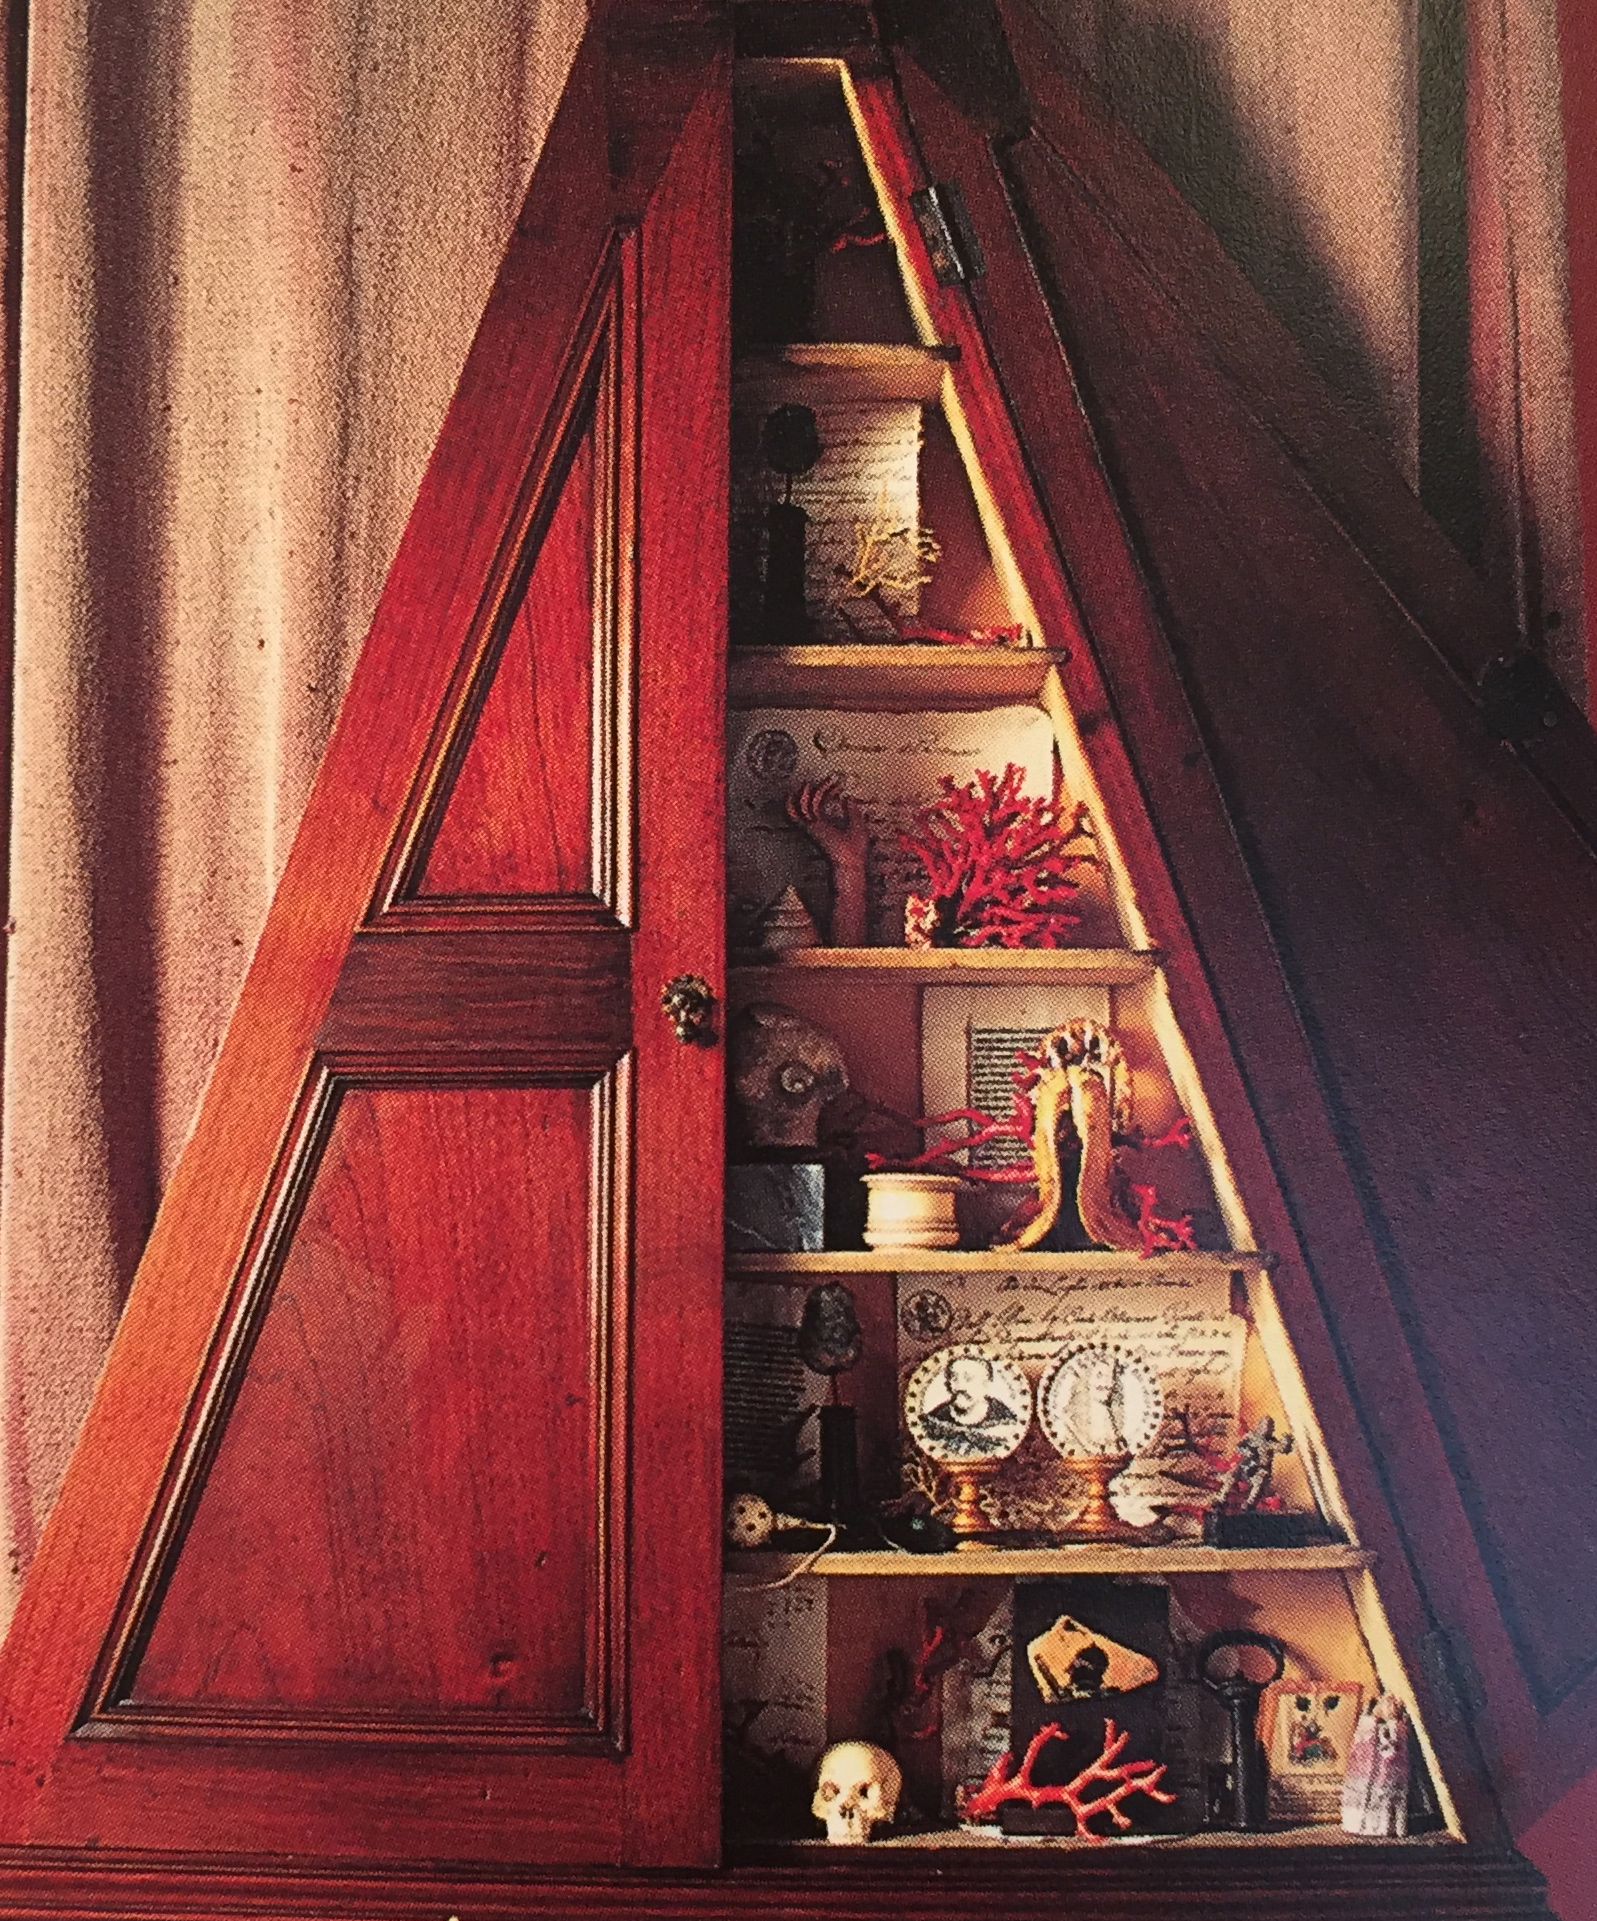 18th-Century Mahogany  'Cabinet of Curiosity'.  Collecting  & Display,    Alistair McAlpine